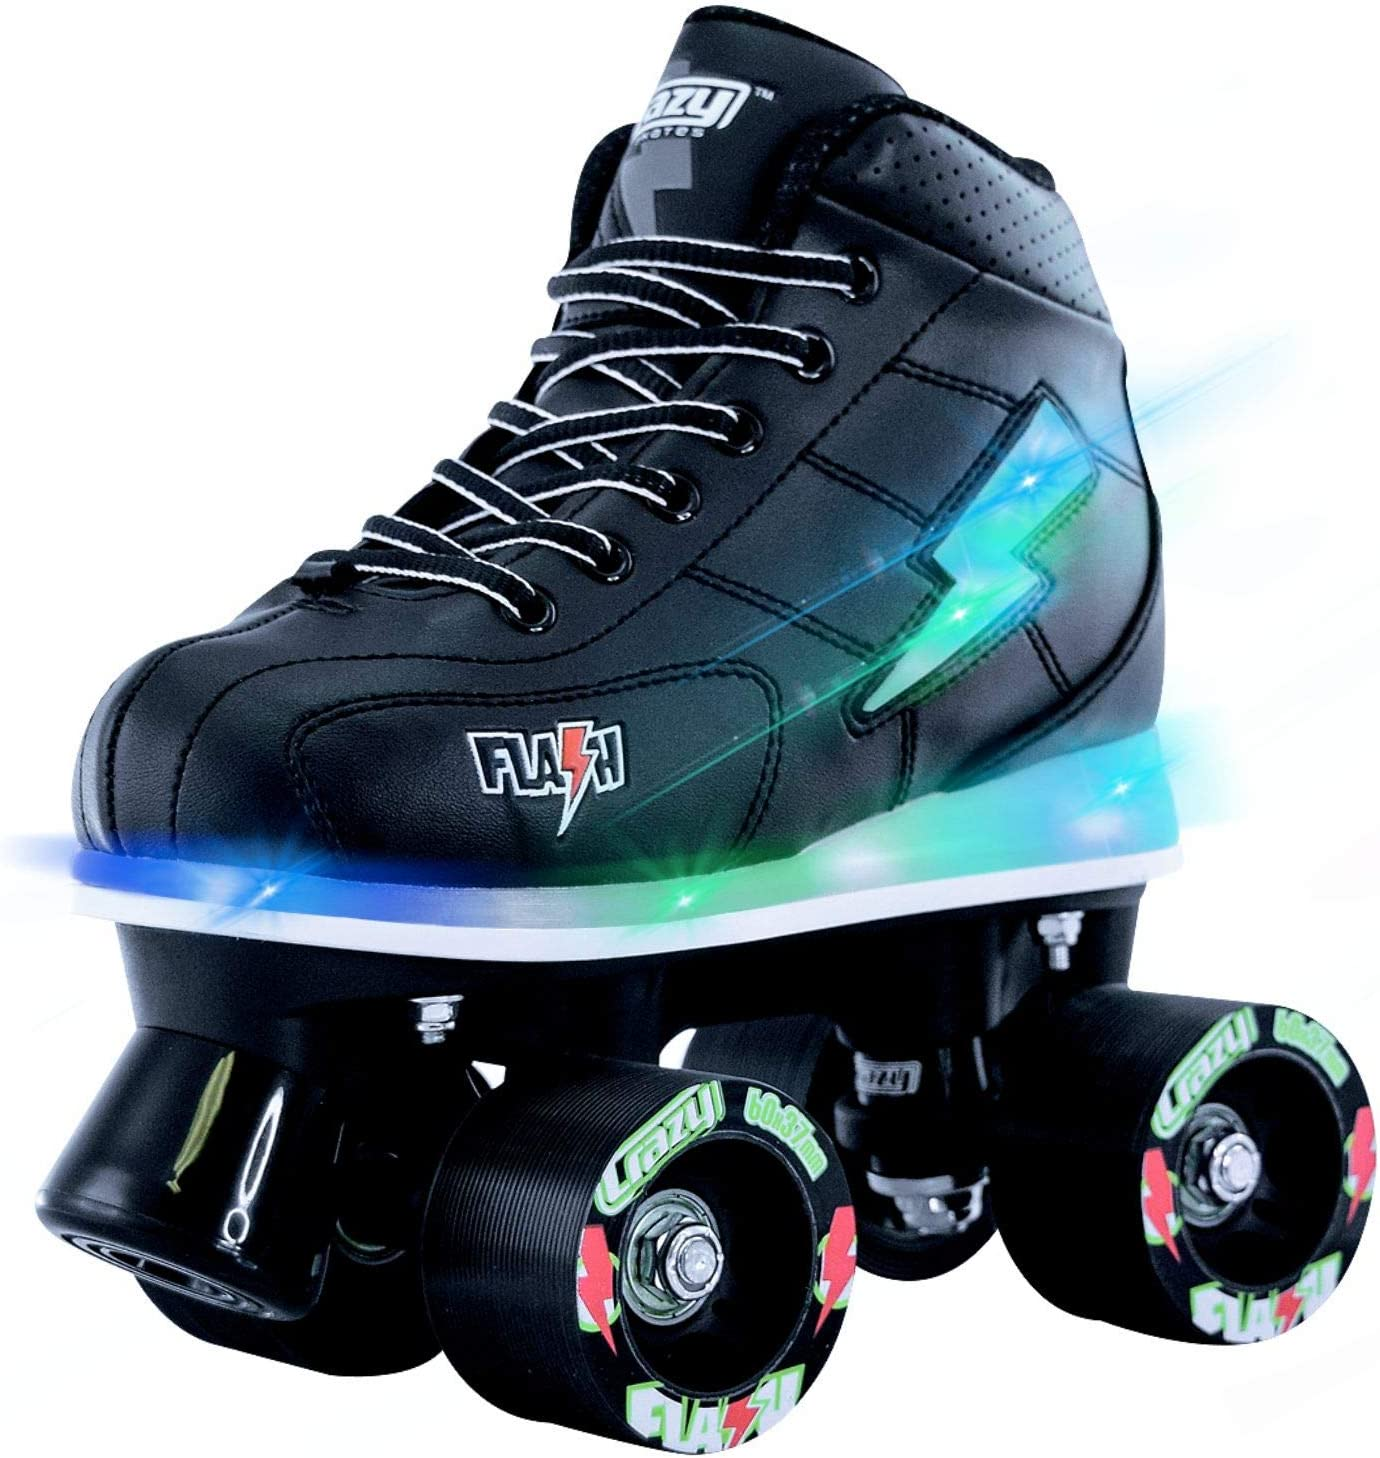 Crazy Skates Flash Roller Skates for Boys Light Up Skates with Ultra Bright Lights and Flashing Lightning Bolt Black Patines